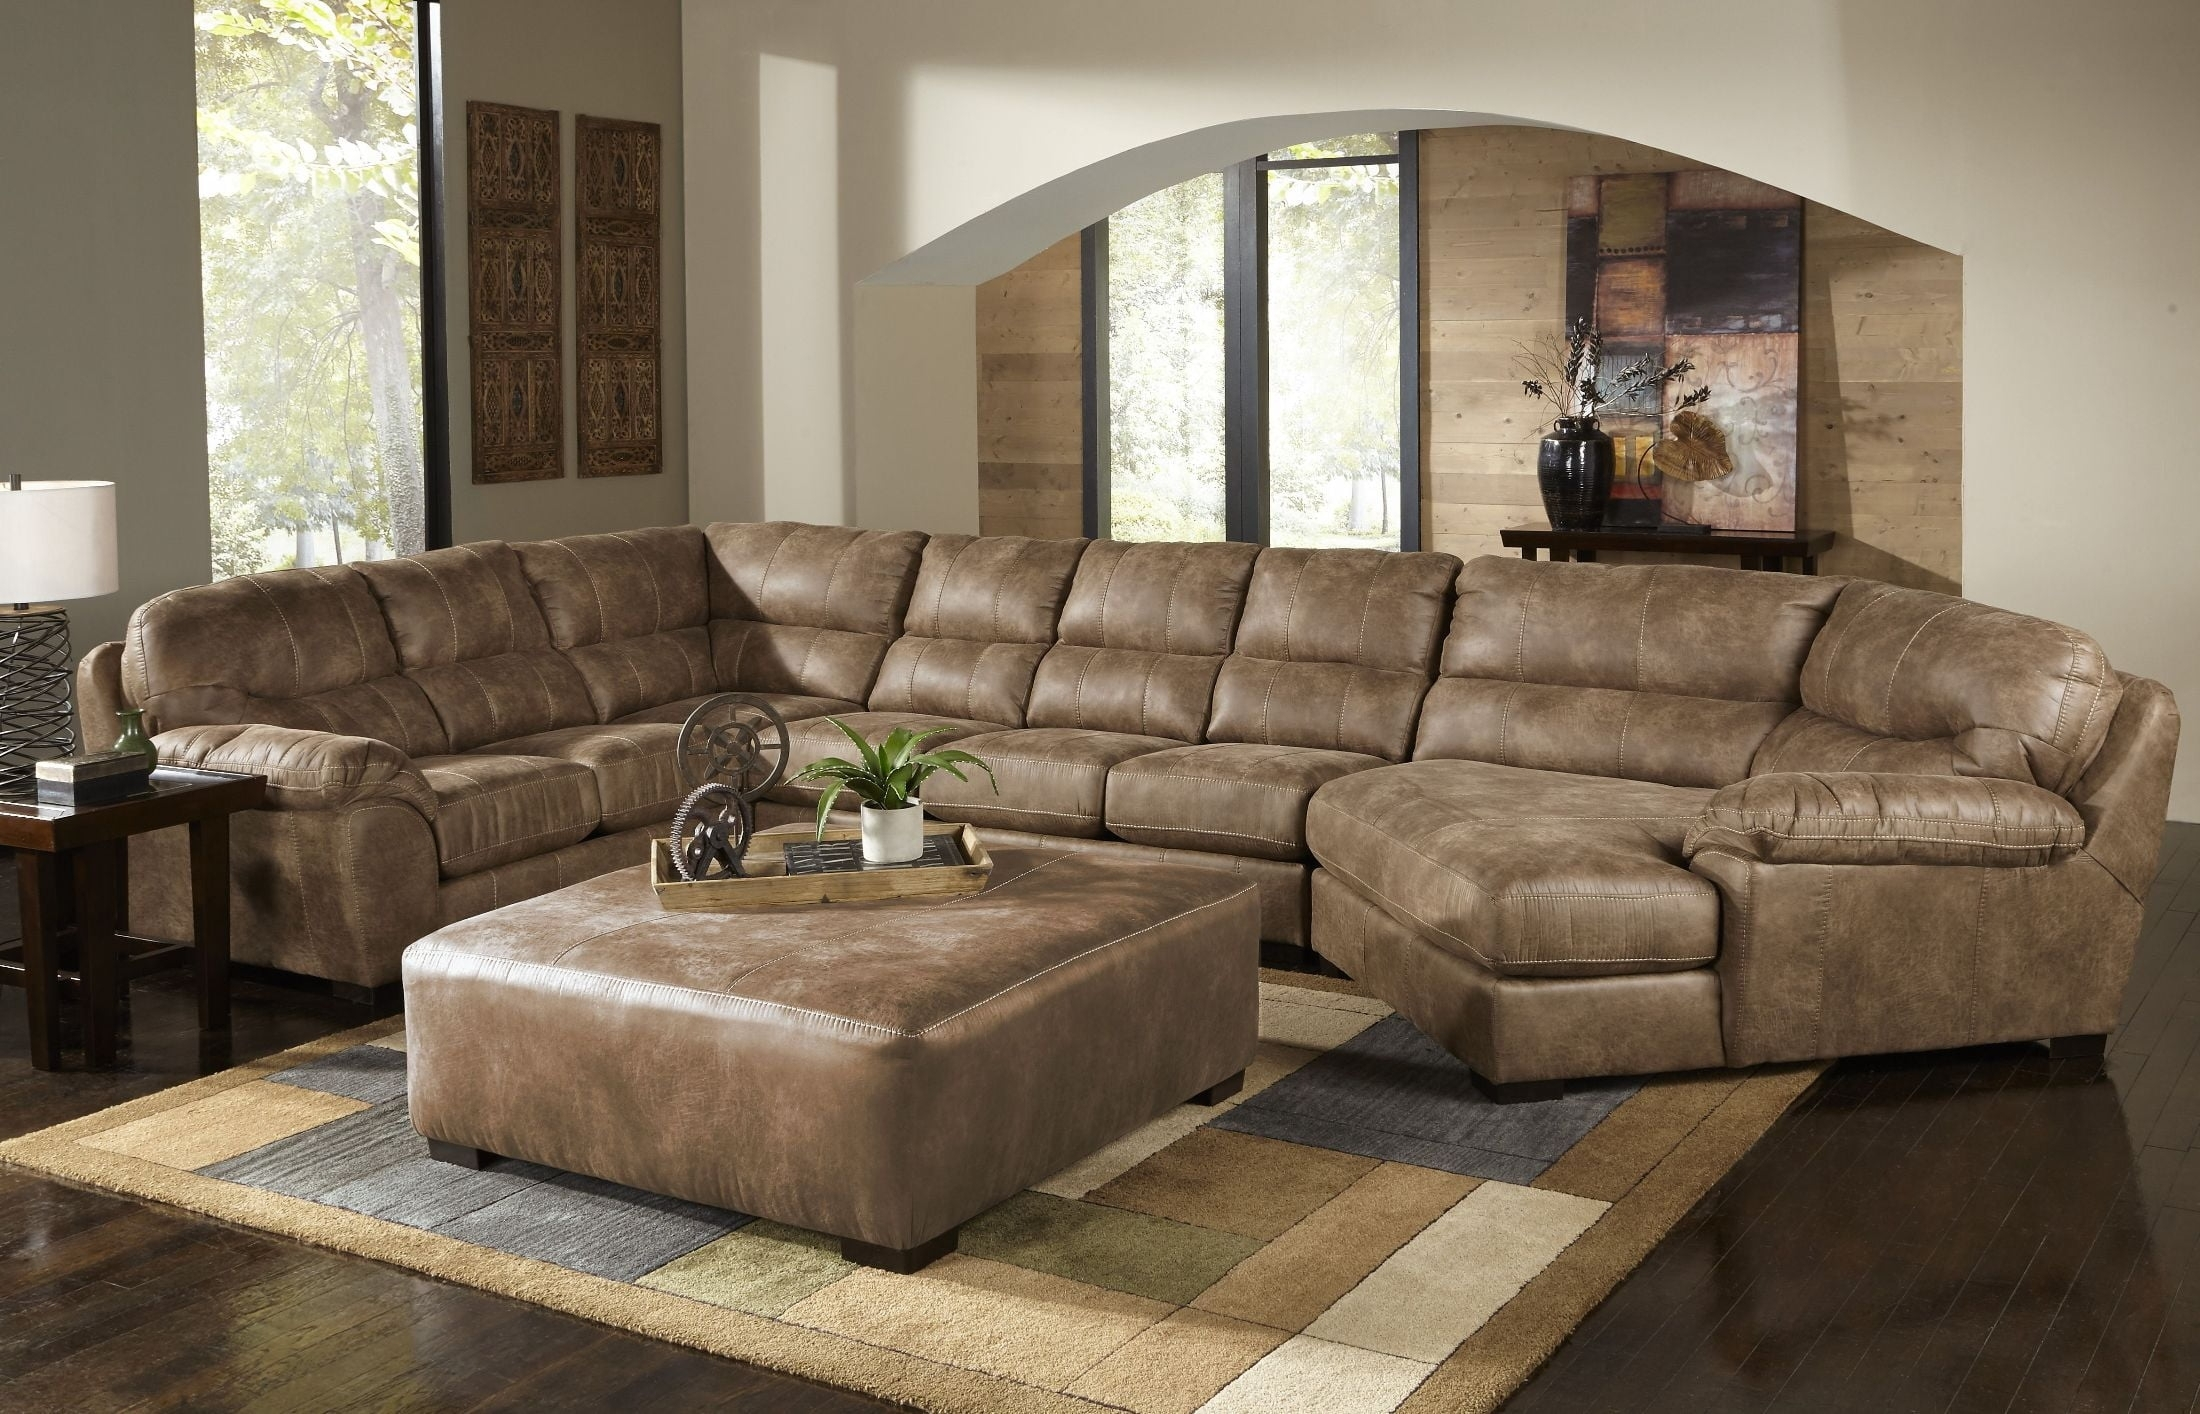 Grant Silt Laf Chaise Sectional, 4453-75-122749302749, Jackson intended for Avery 2 Piece Sectionals With Laf Armless Chaise (Image 13 of 30)